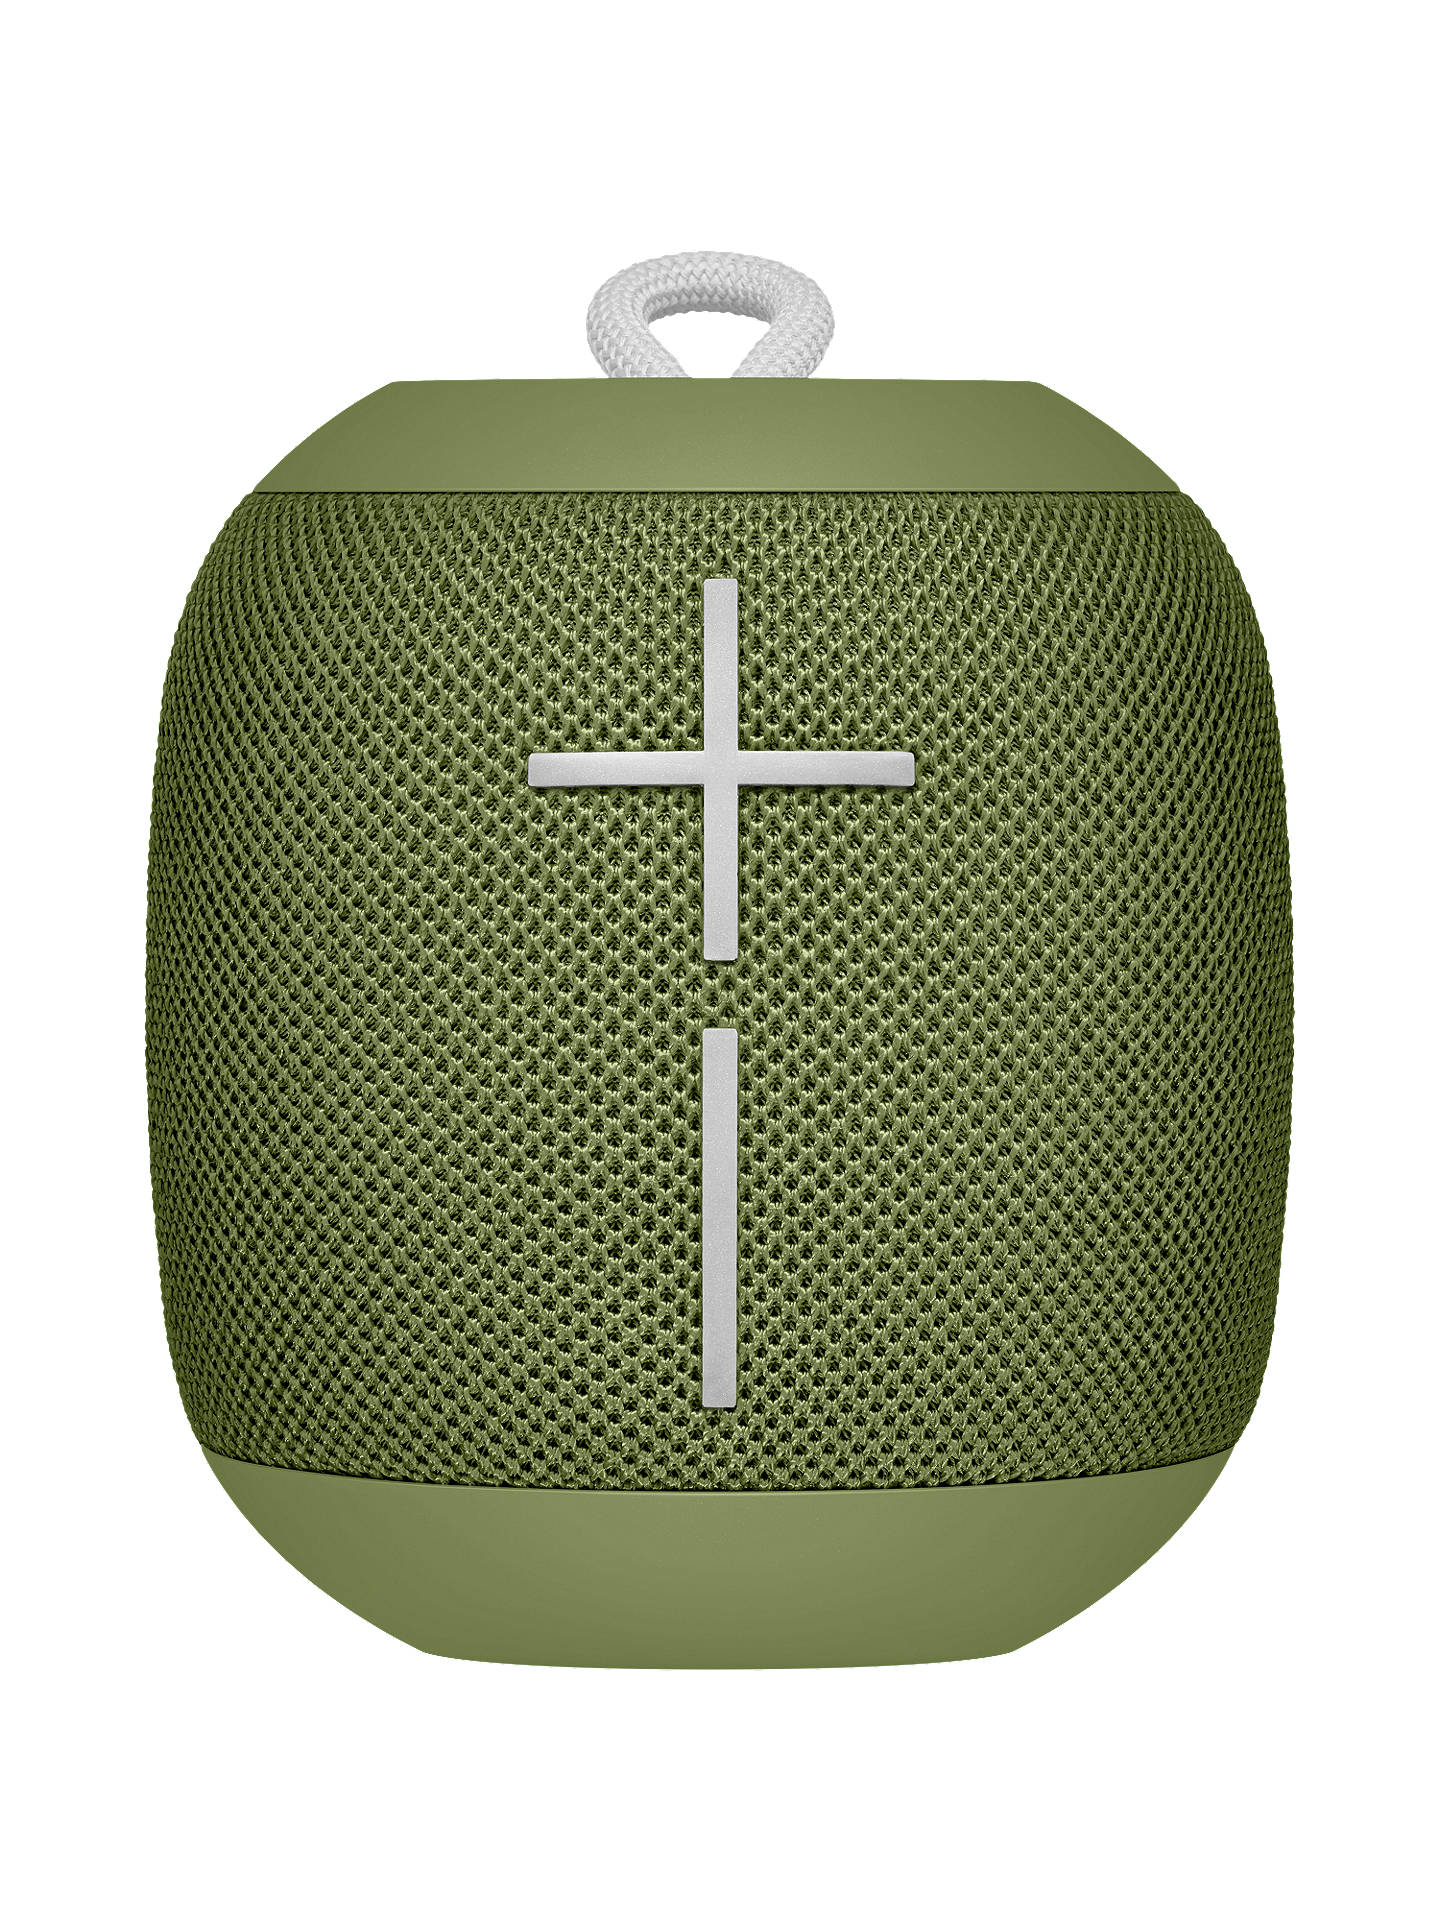 Buy Ultimate Ears WONDERBOOM Bluetooth Waterproof Portable Speaker, Avocado Green Online at johnlewis.com